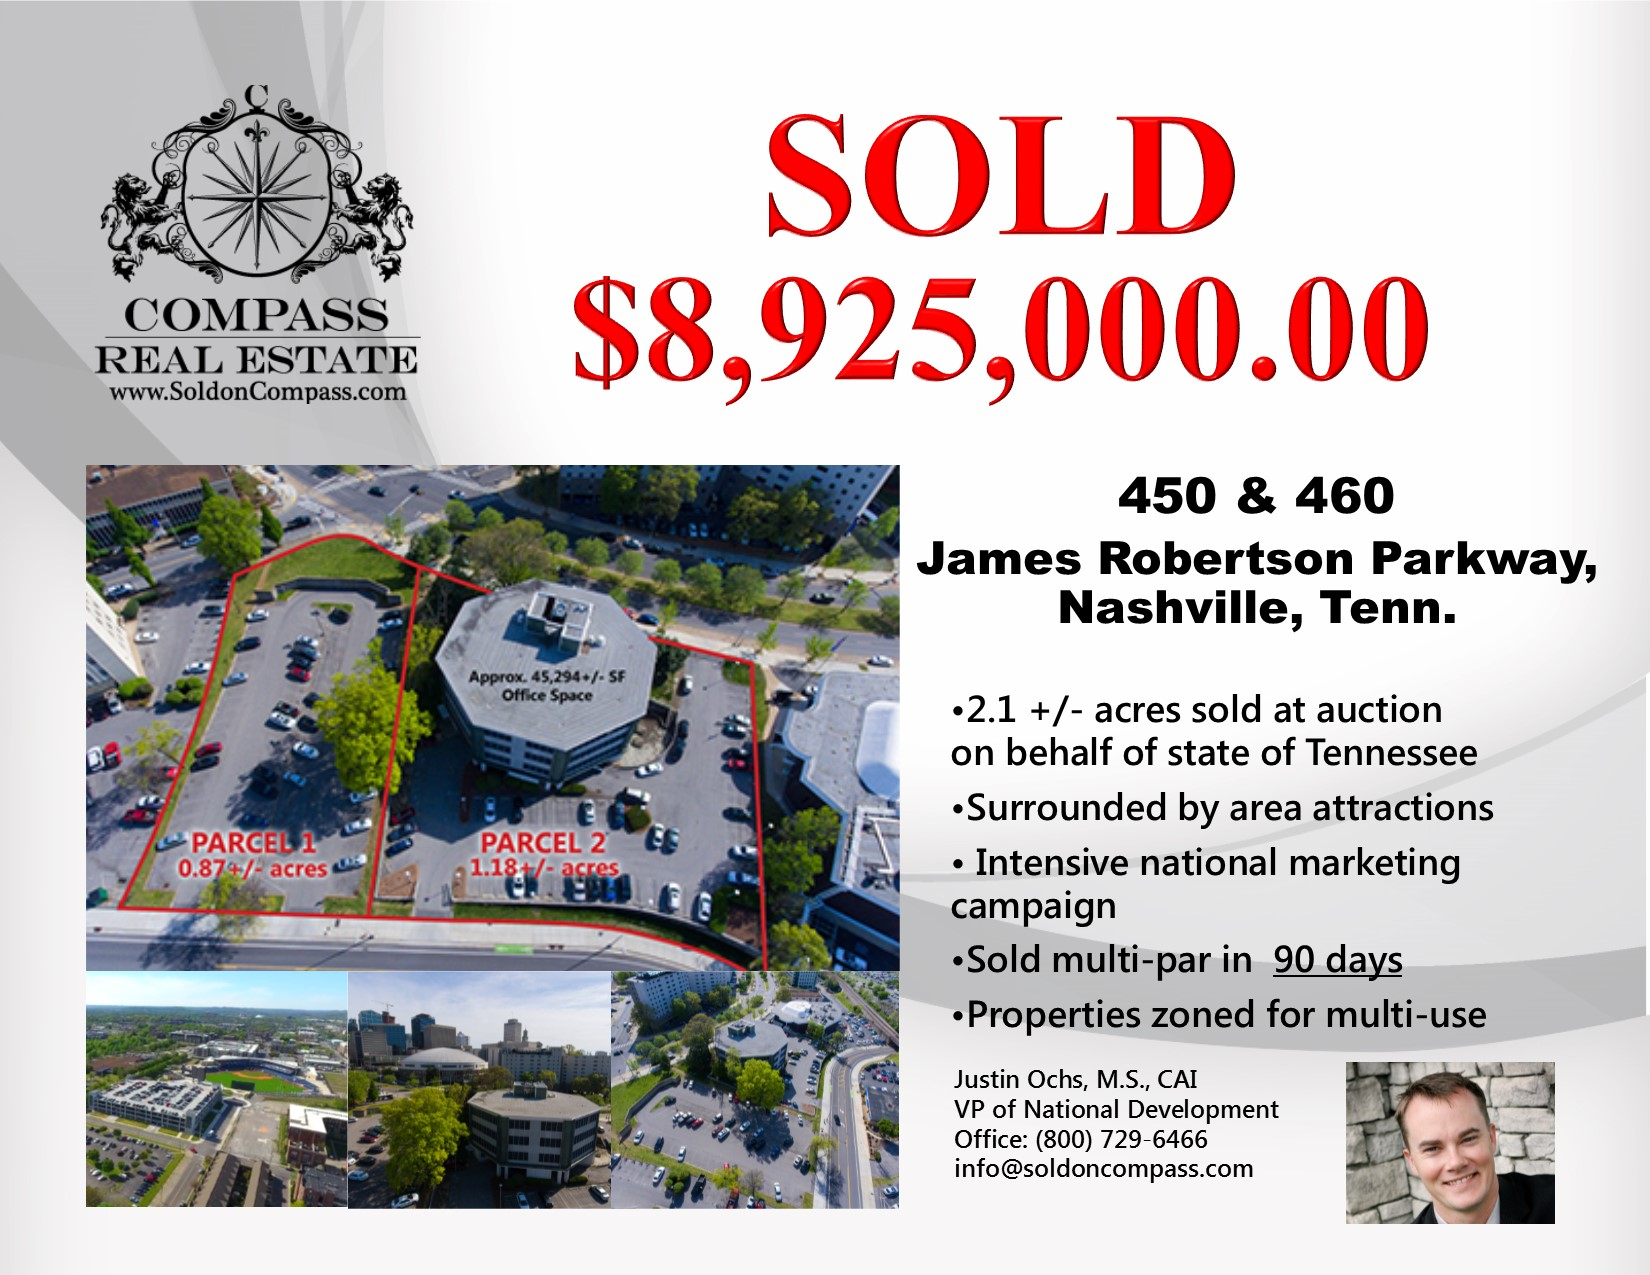 compass auction sells downtown nashville properties